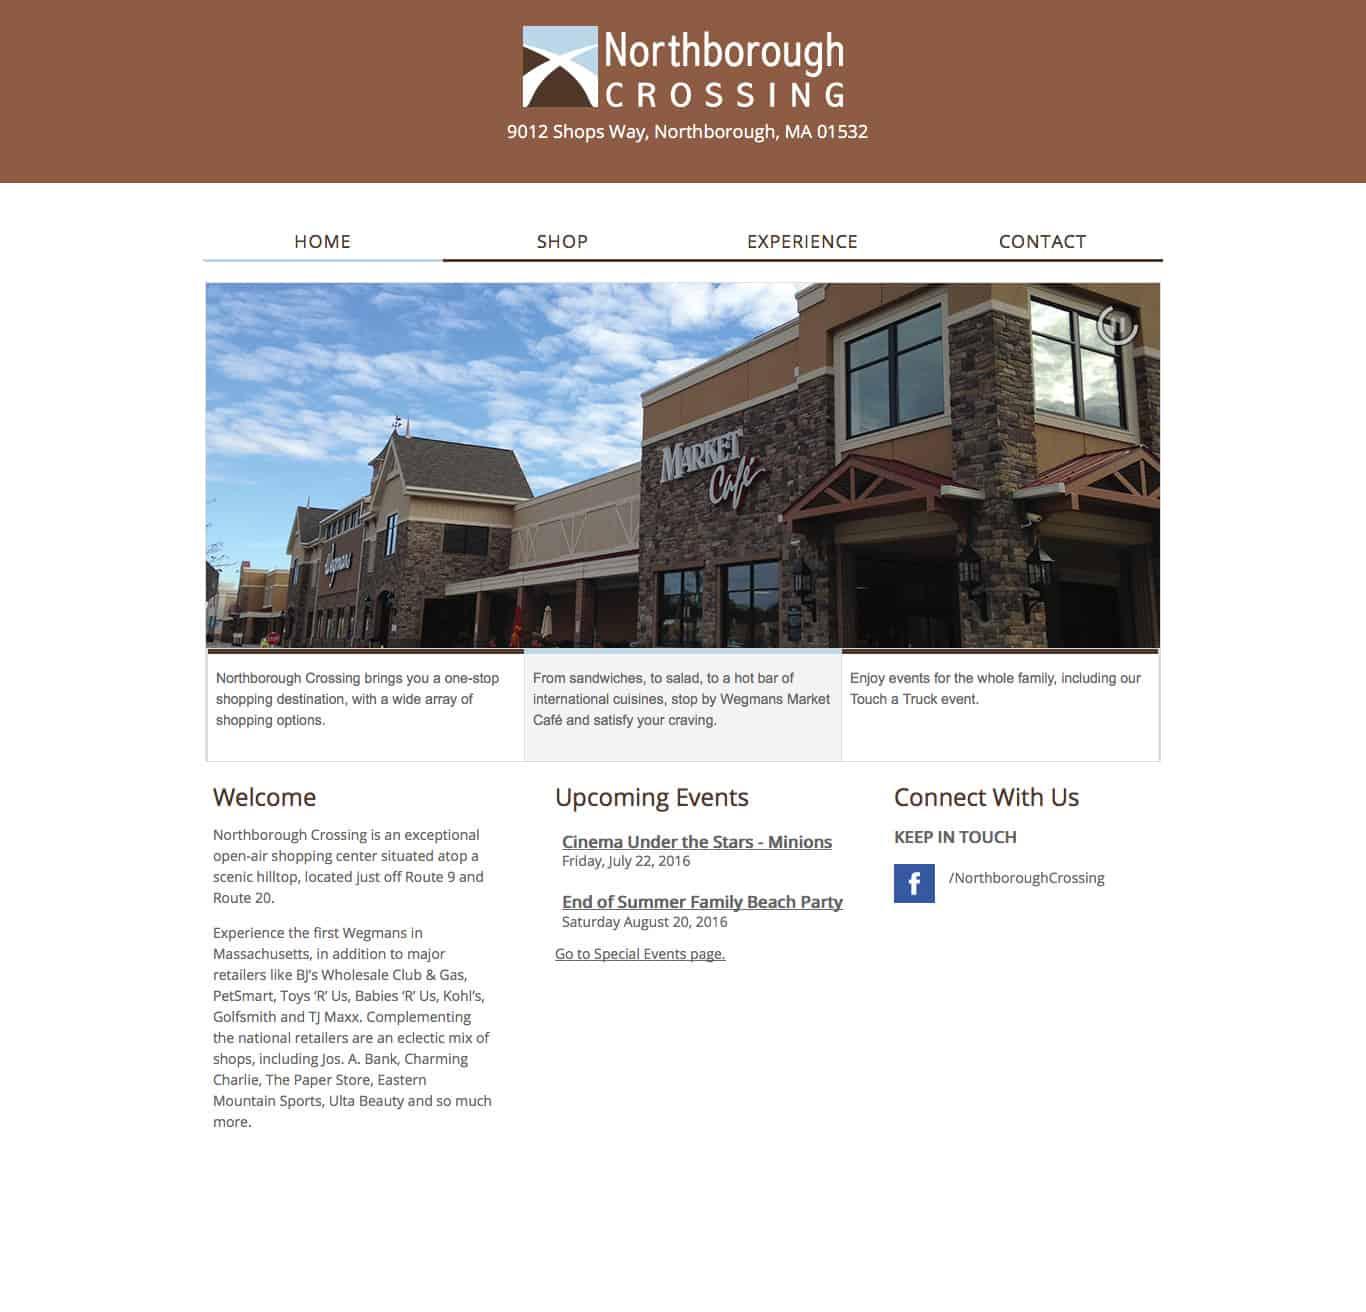 northboroughcrossing.com home page